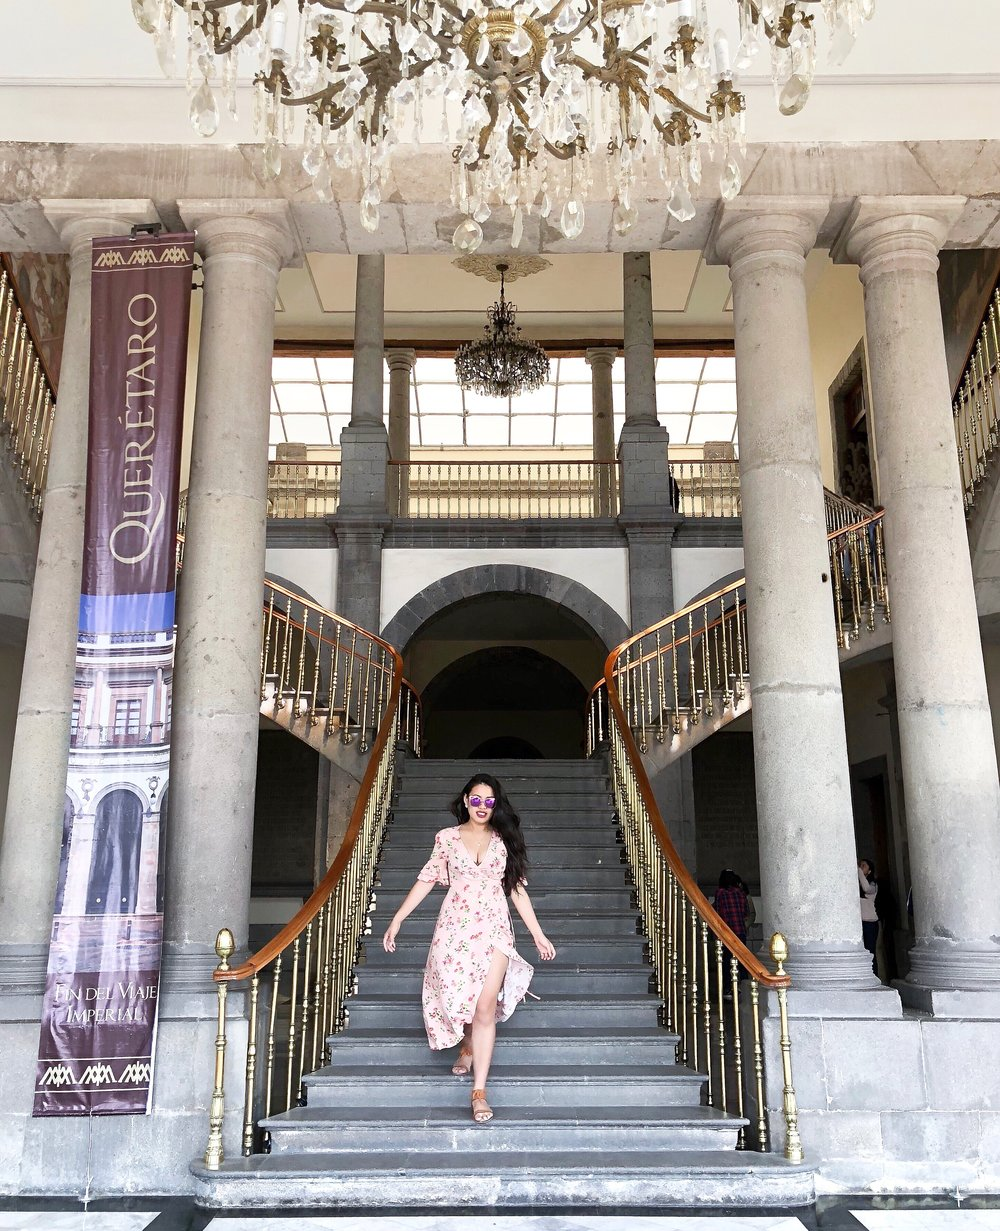 Me being the extra person I am getting a picture in the Castillo's Grand Staircase